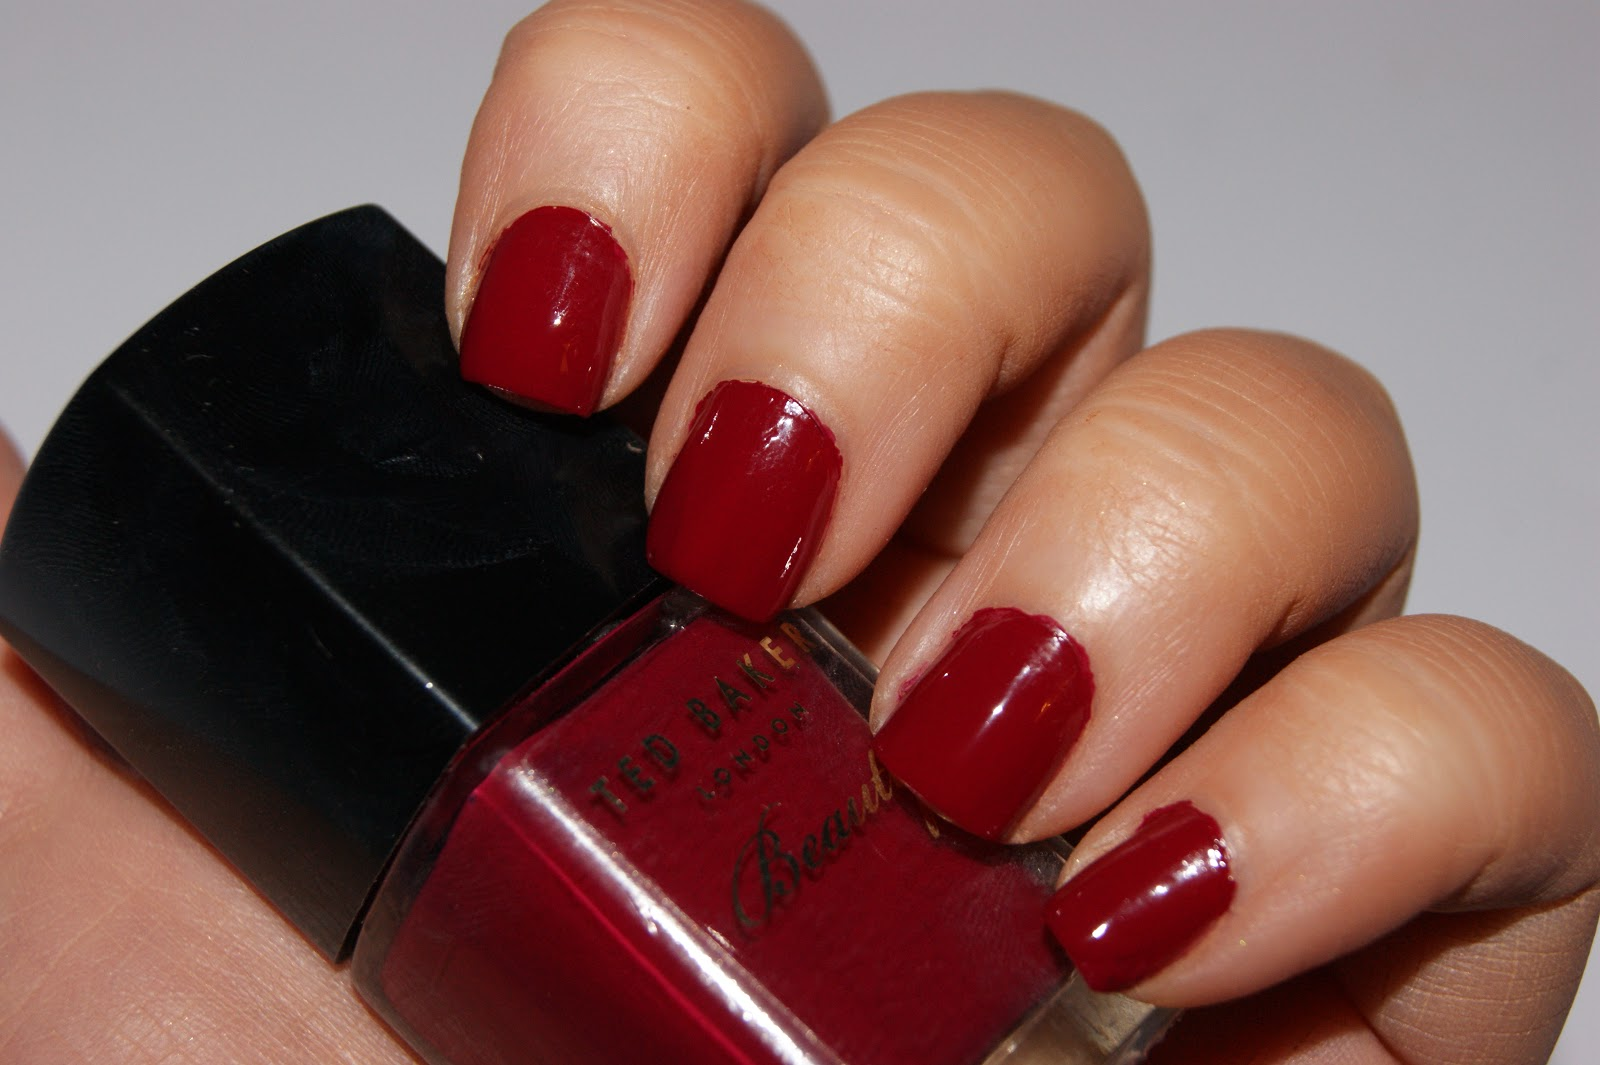 New Ted Baker Nail Duo in Cherry Bomb and Sugar Rush - Review | The ...